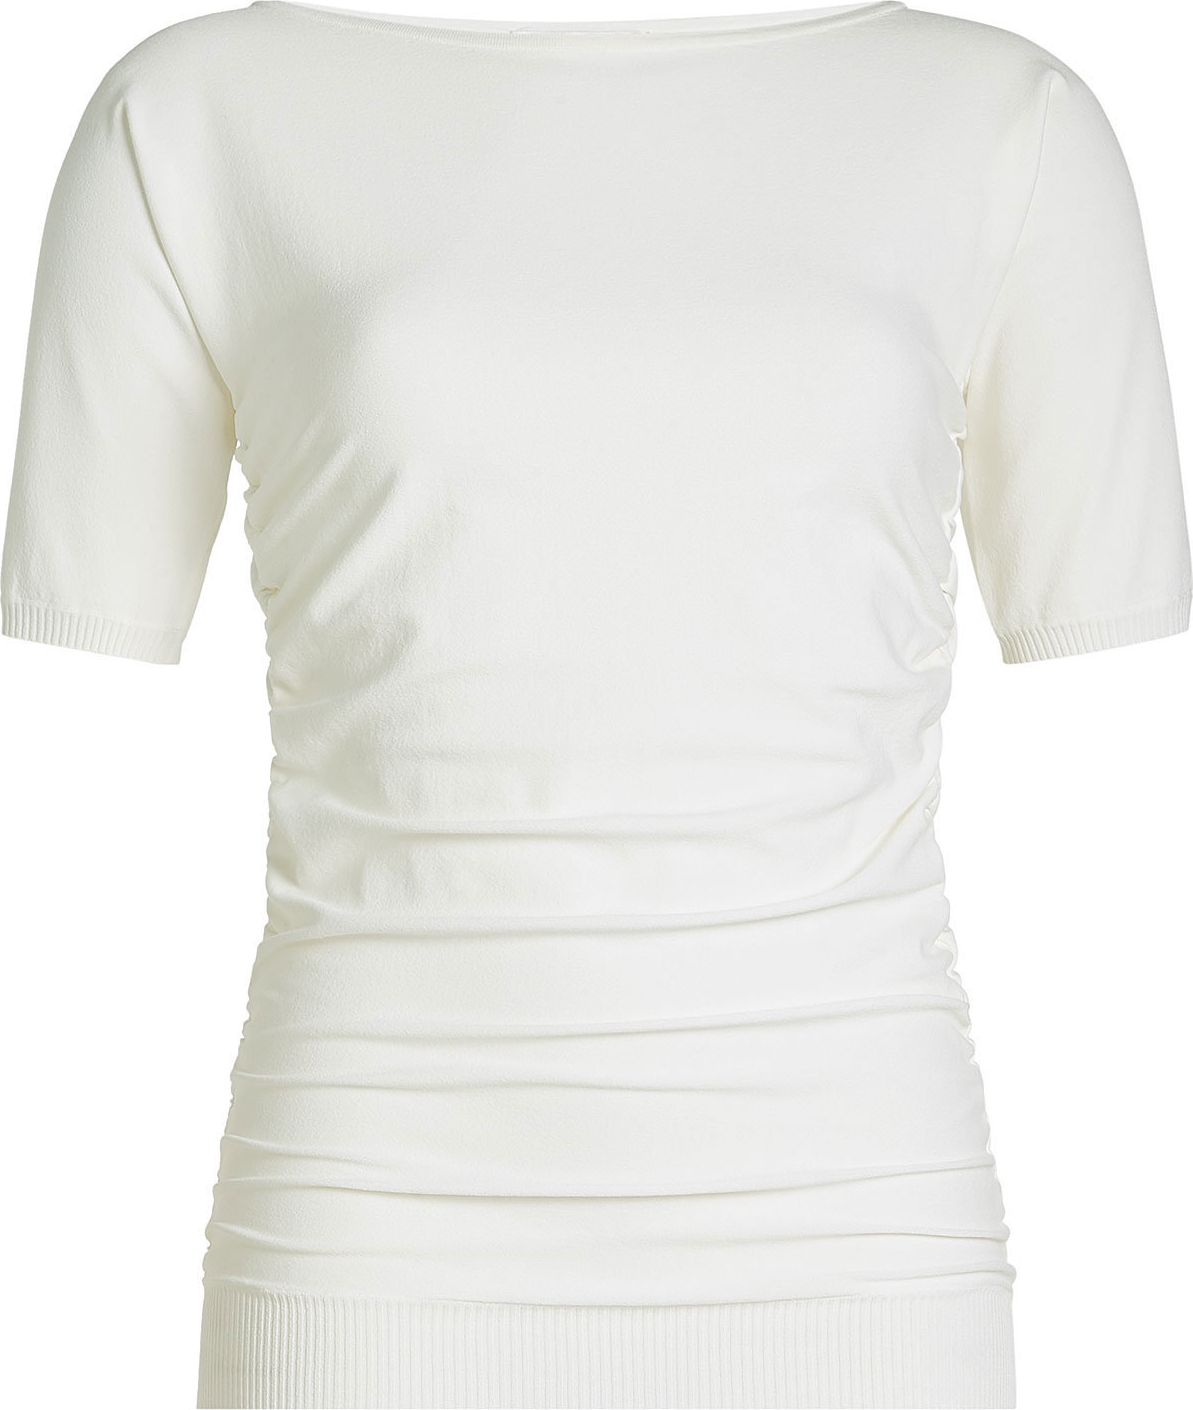 Max Mara - Fitted Top